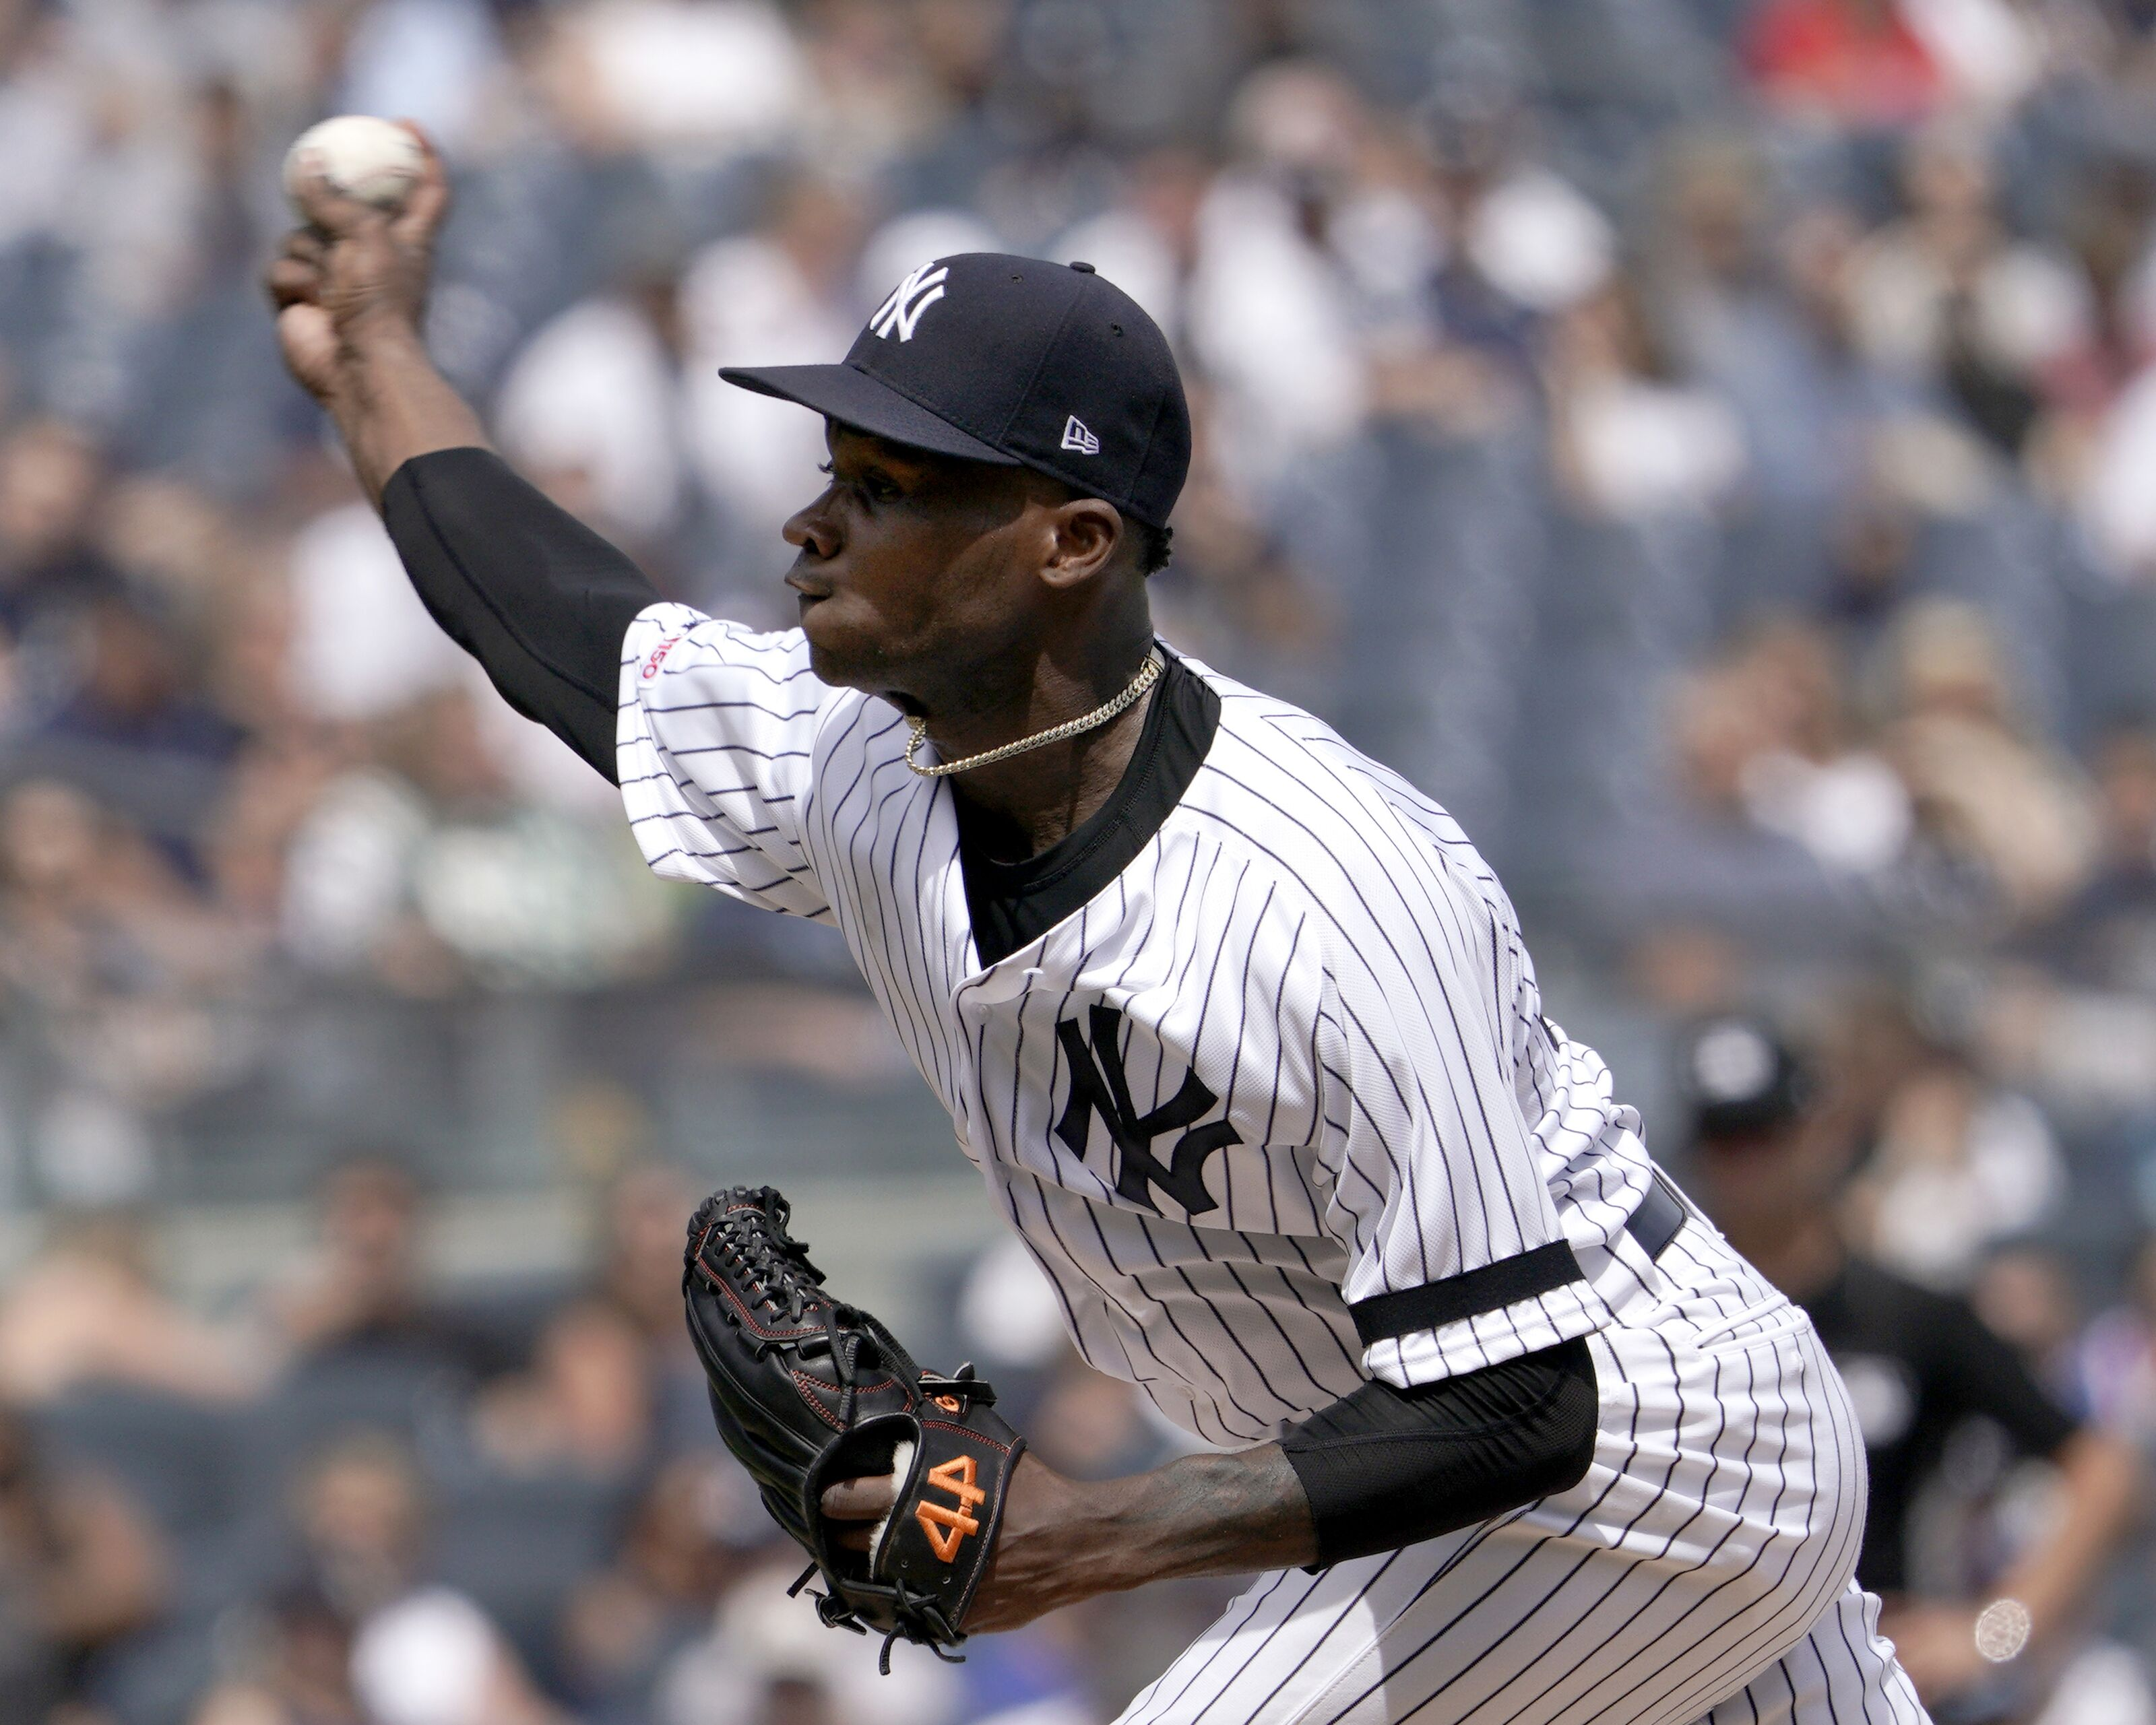 Yankees are still in the dark about Domingo German